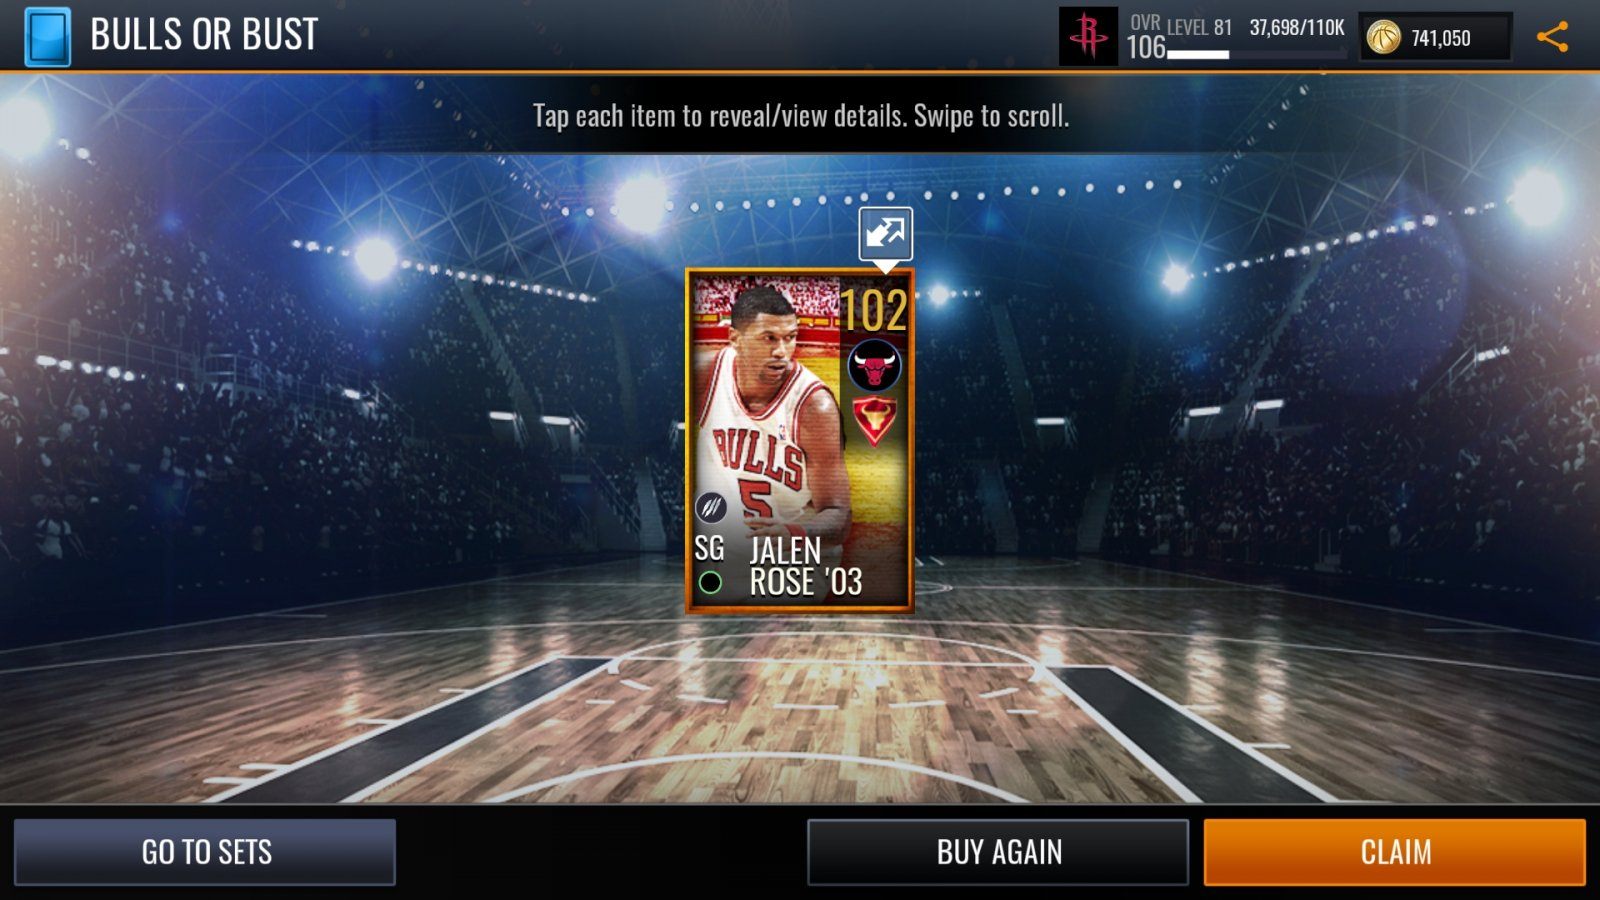 Screenshot_20190709_202404_com.ea.gp.nbamobile.jpg